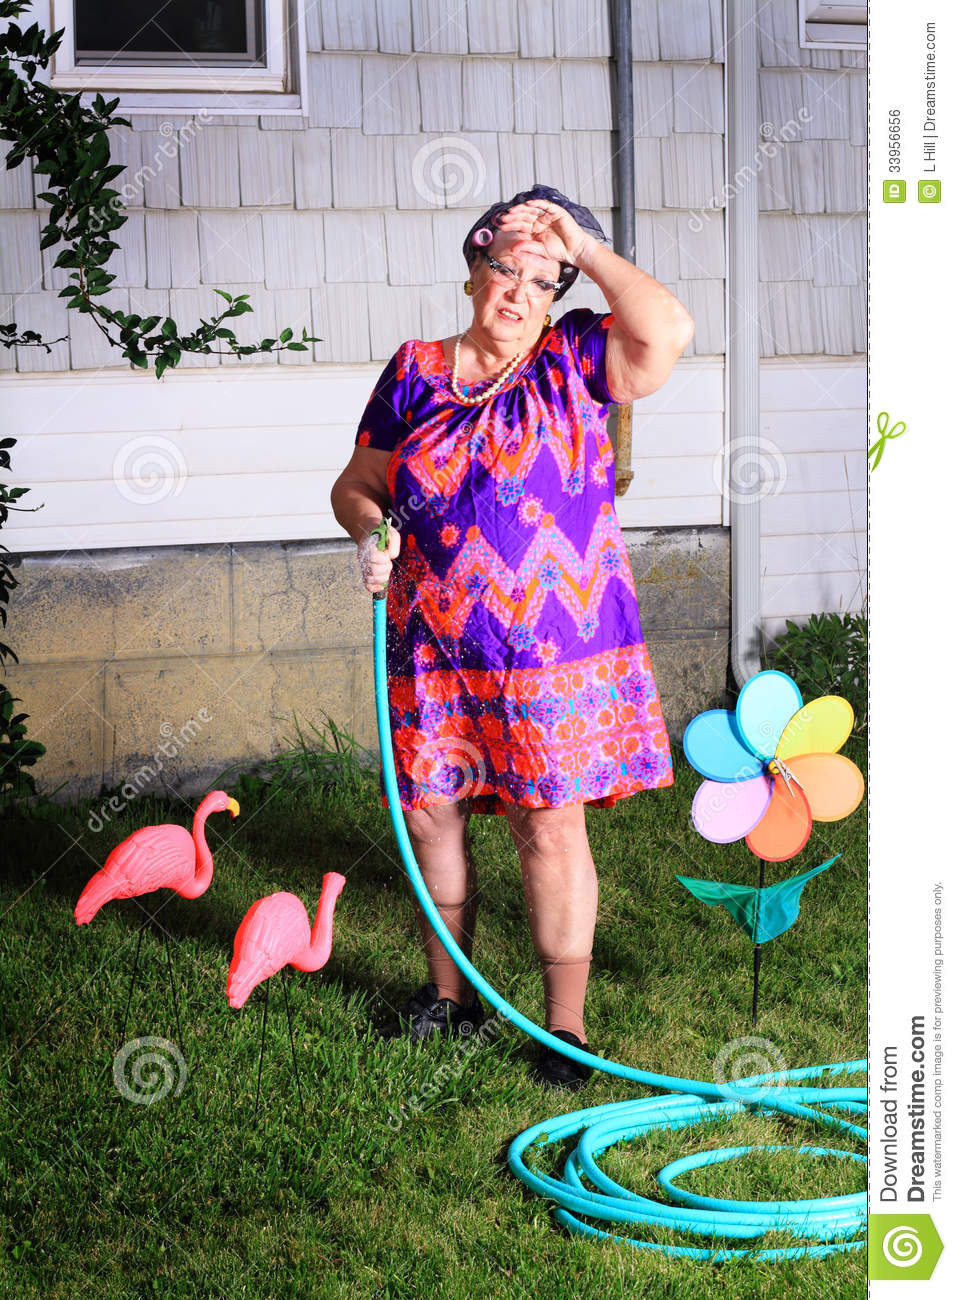 5c4640927d Silly image of a tired senior gray haired granny lady wearing cat eye  glasses